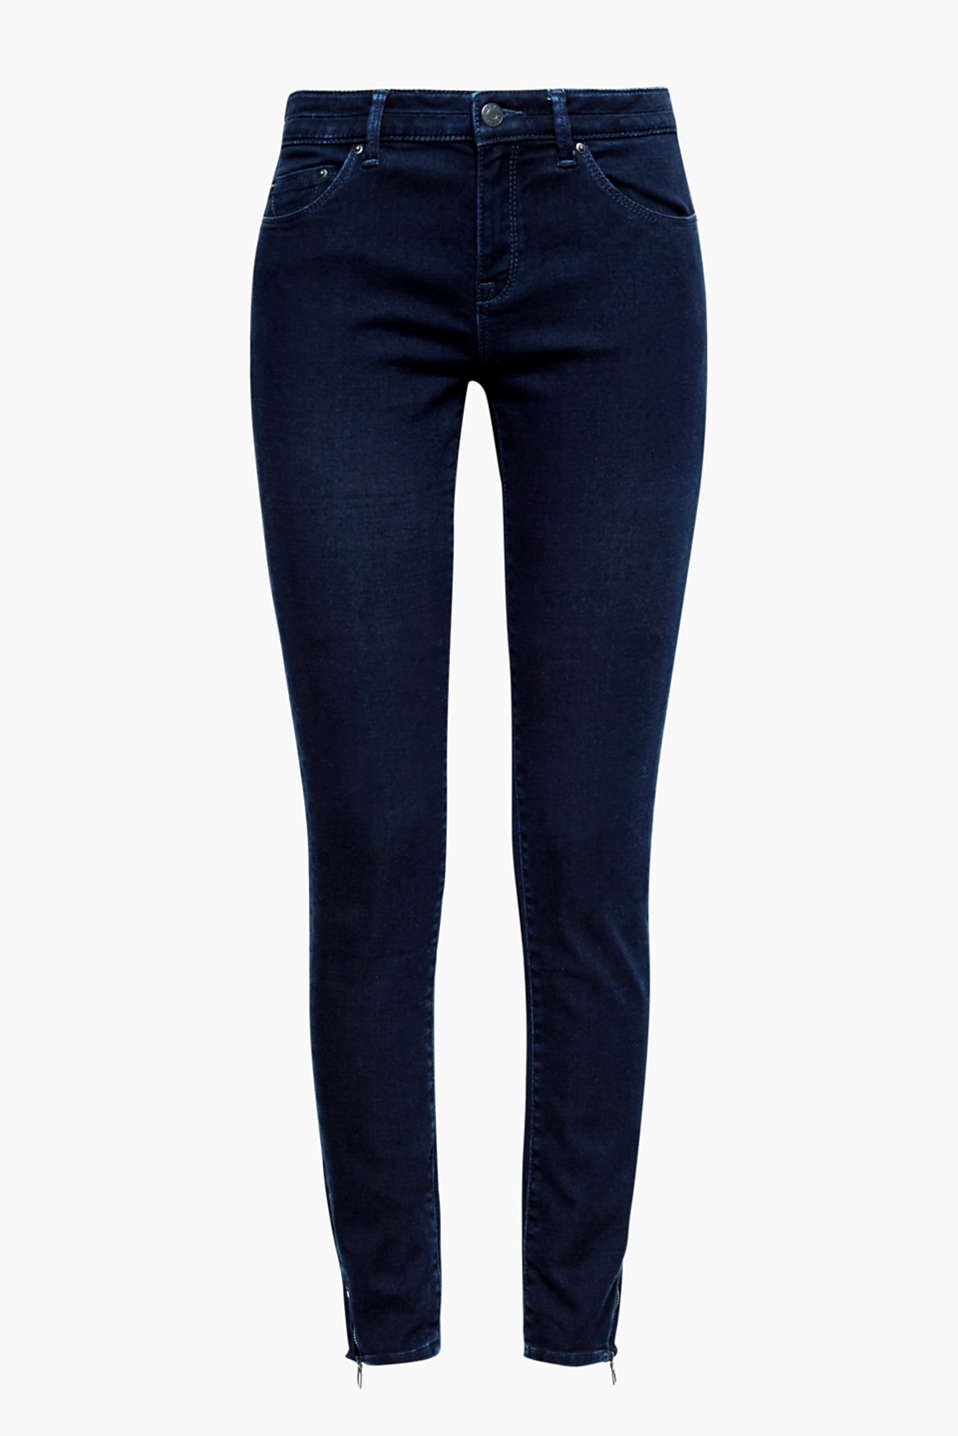 So soft you can hardly feel it: these skinny jeans with a high waistband and hem zips at the sides!